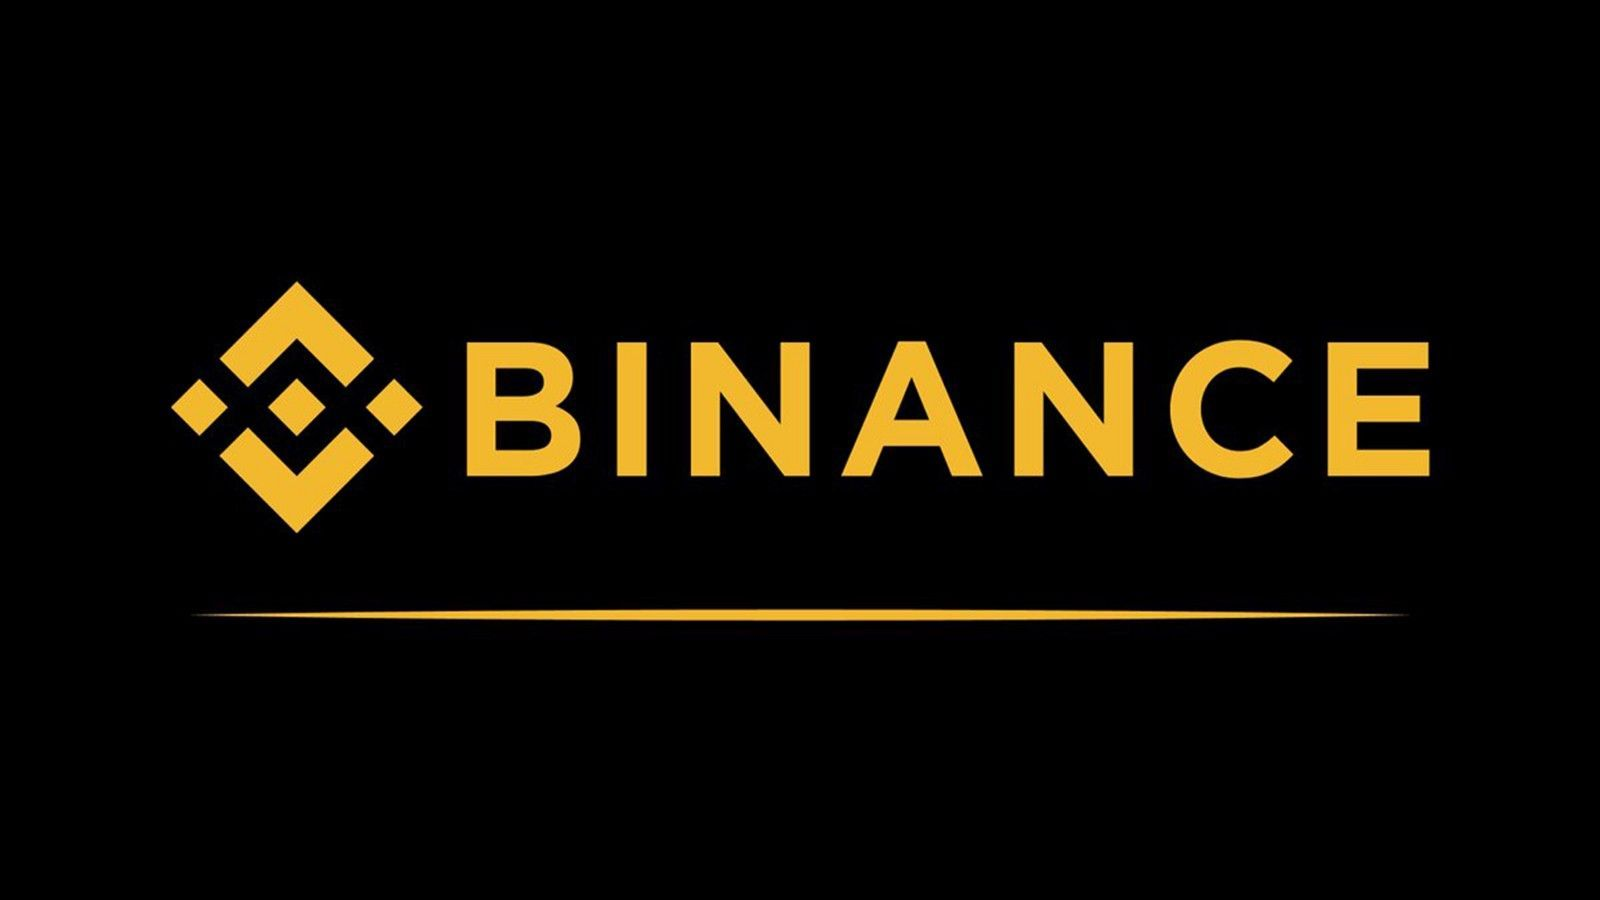 Binance continues push to become regulated crypto exchange with new hire